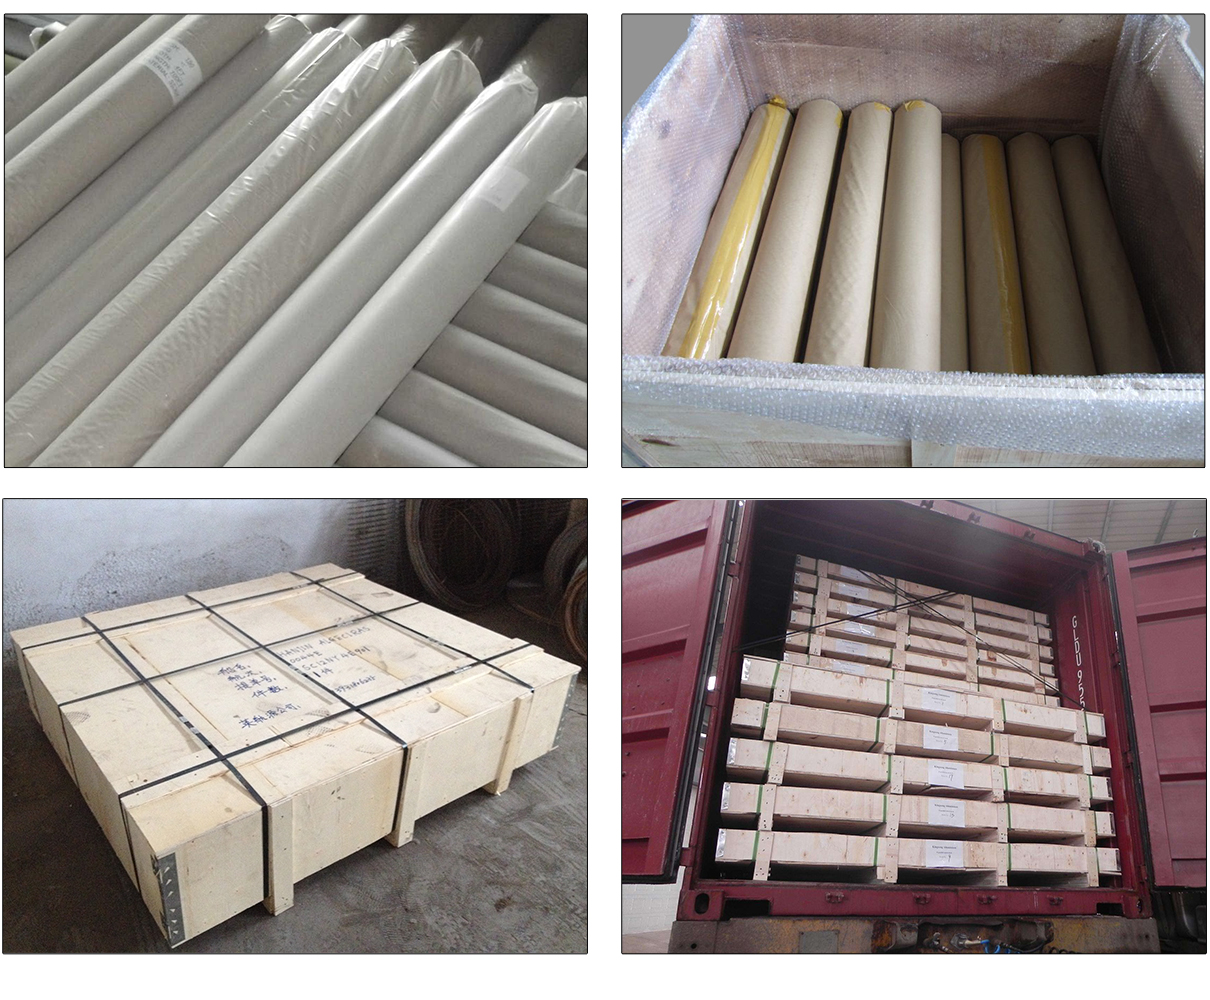 2-400 Mesh Square Stainless Steel Wire Mesh For filter